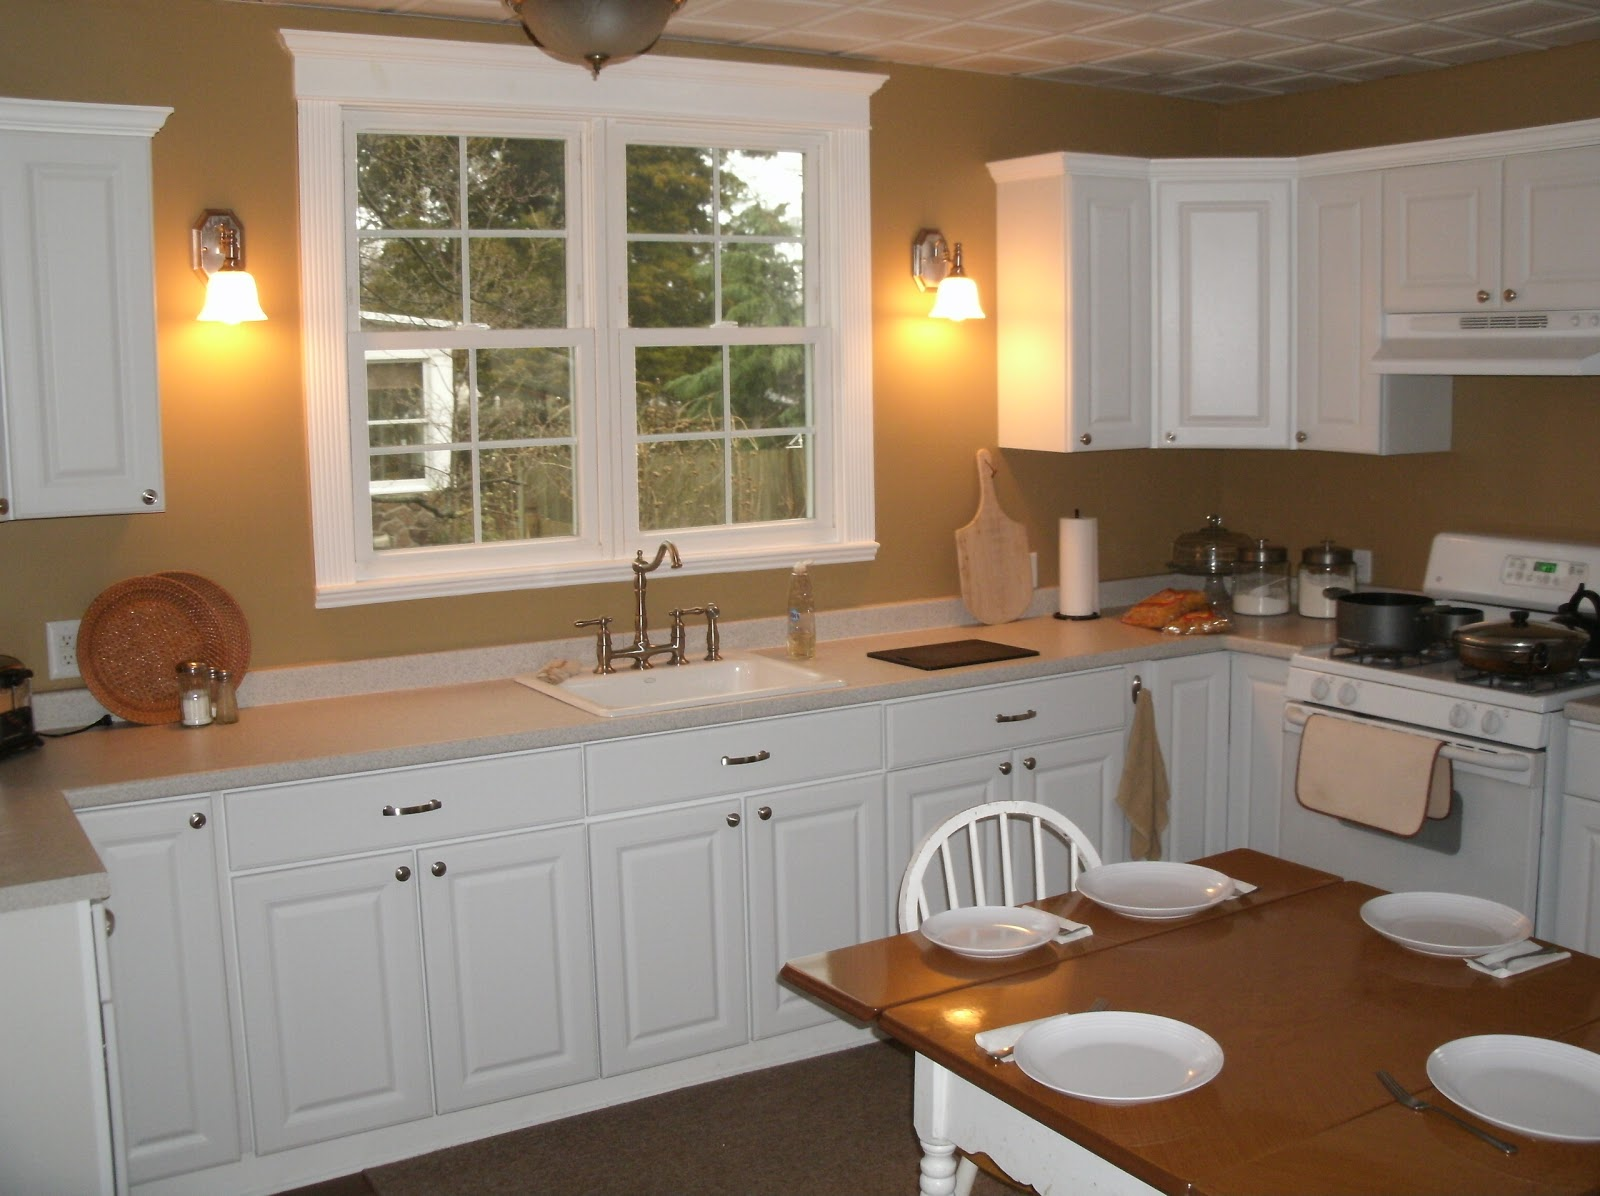 kitchen remodeling contractors kitchen remodeling contractors Victorian White Kitchen designs Kitchen remodeling contractors Gibbstown NJ South jersey PA